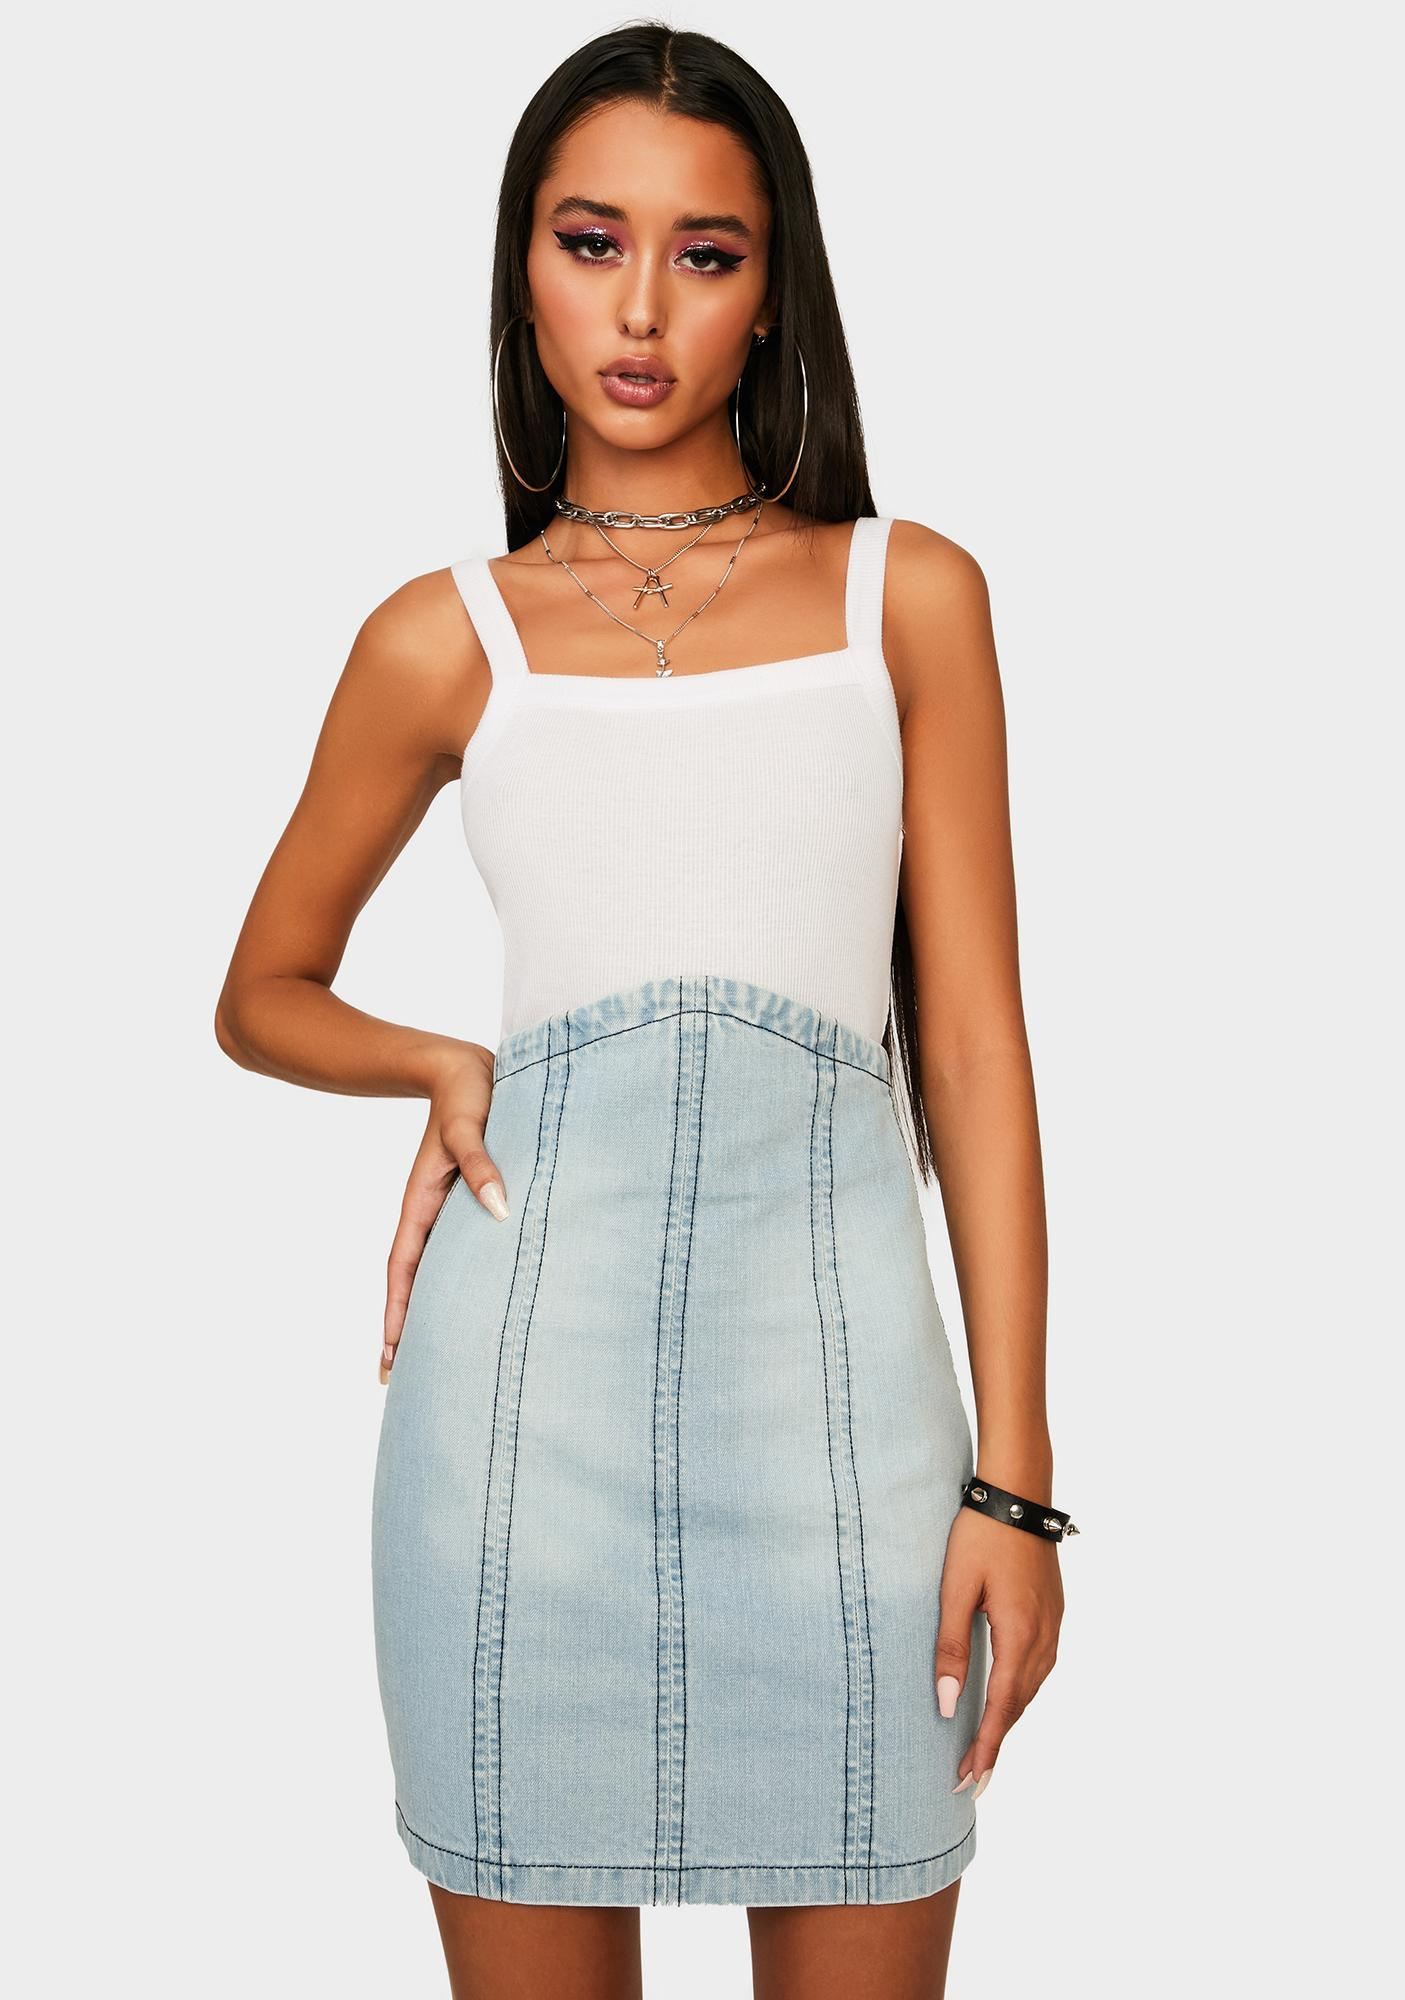 Kiki Riki Believe It Or Not Denim Skirt